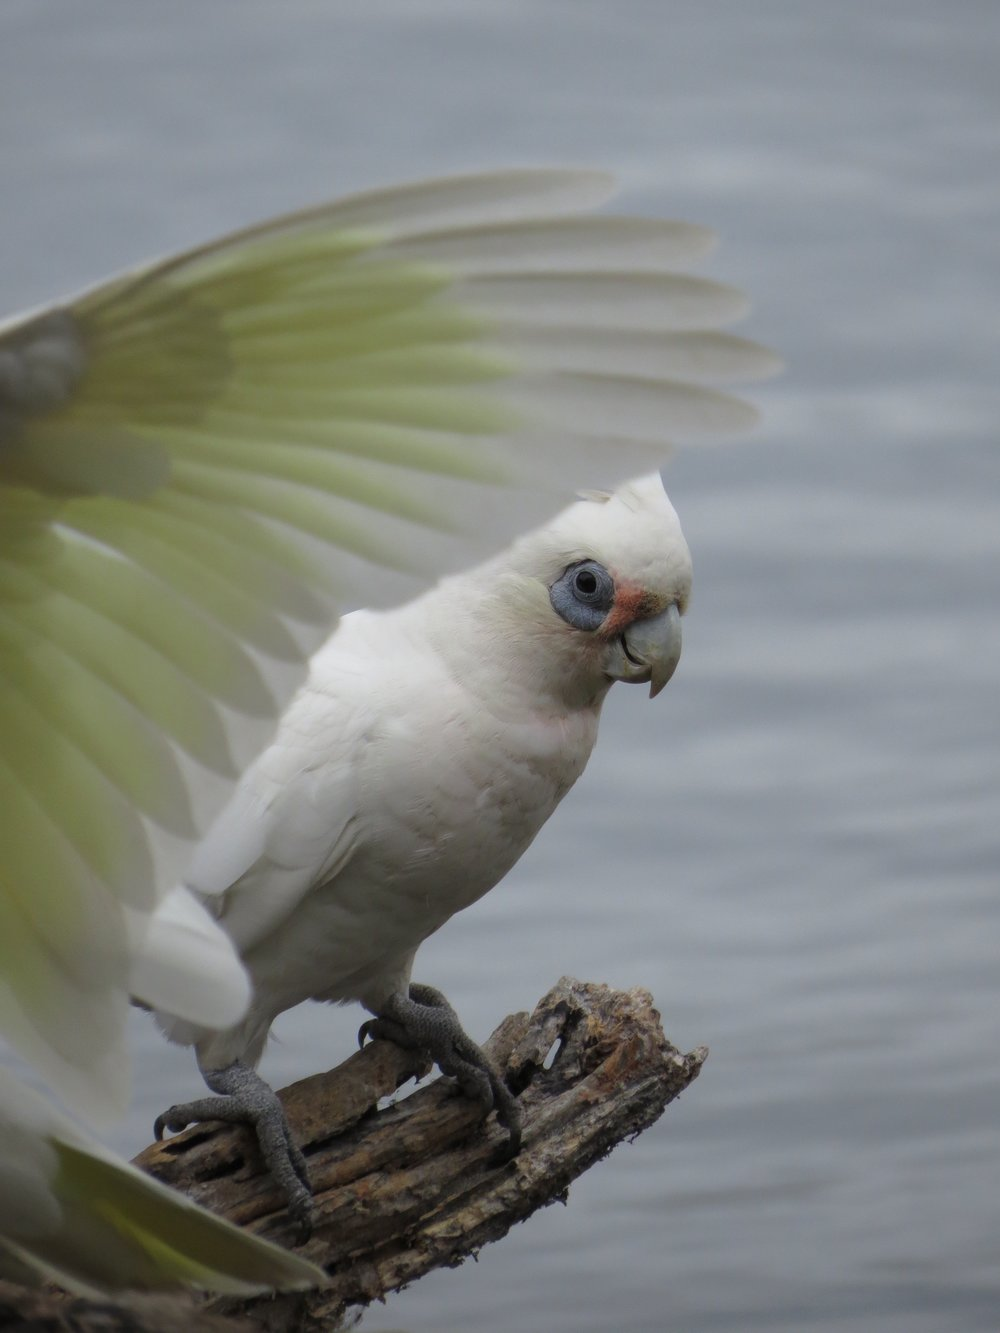 A Corella peeking out from behind a wing